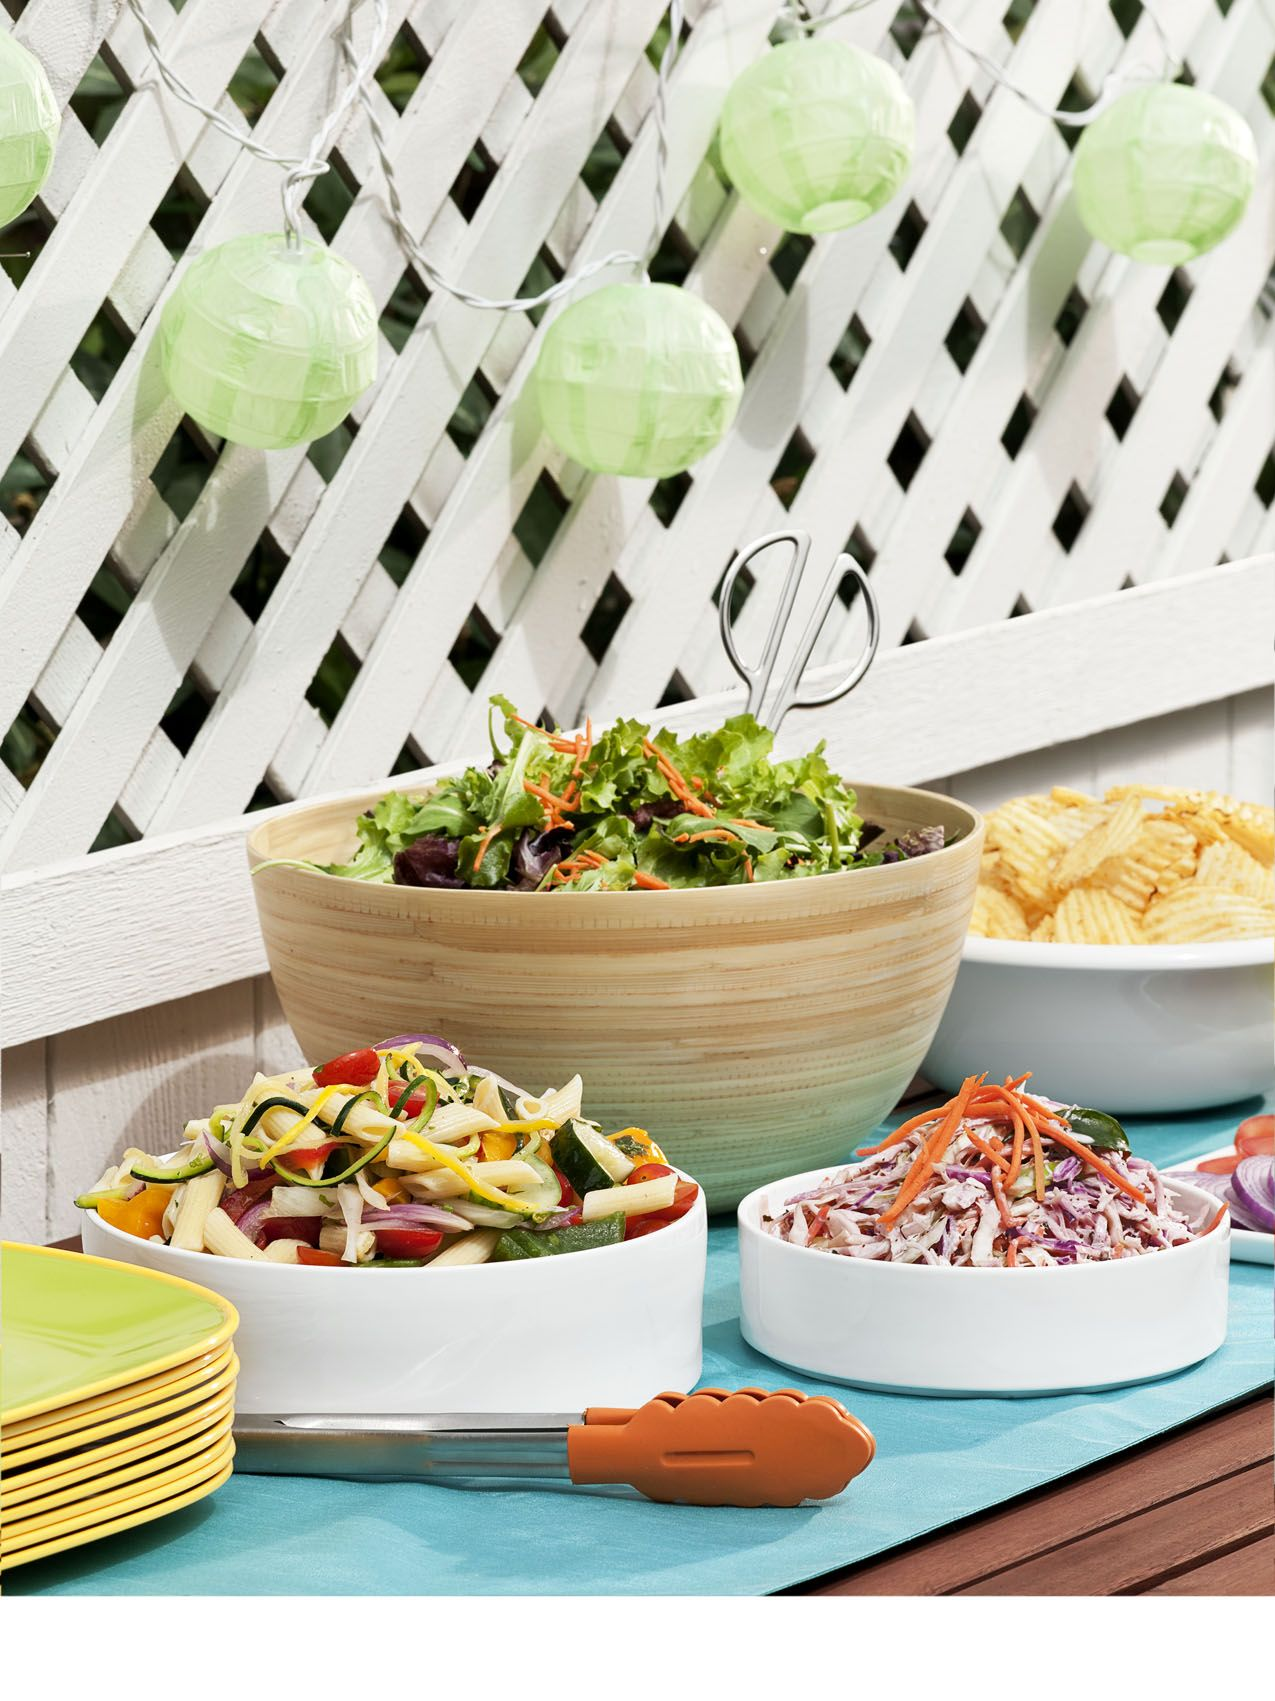 dc676bd6d523 60 Summer Party Ideas and Themes - Outdoor Entertaining Tips